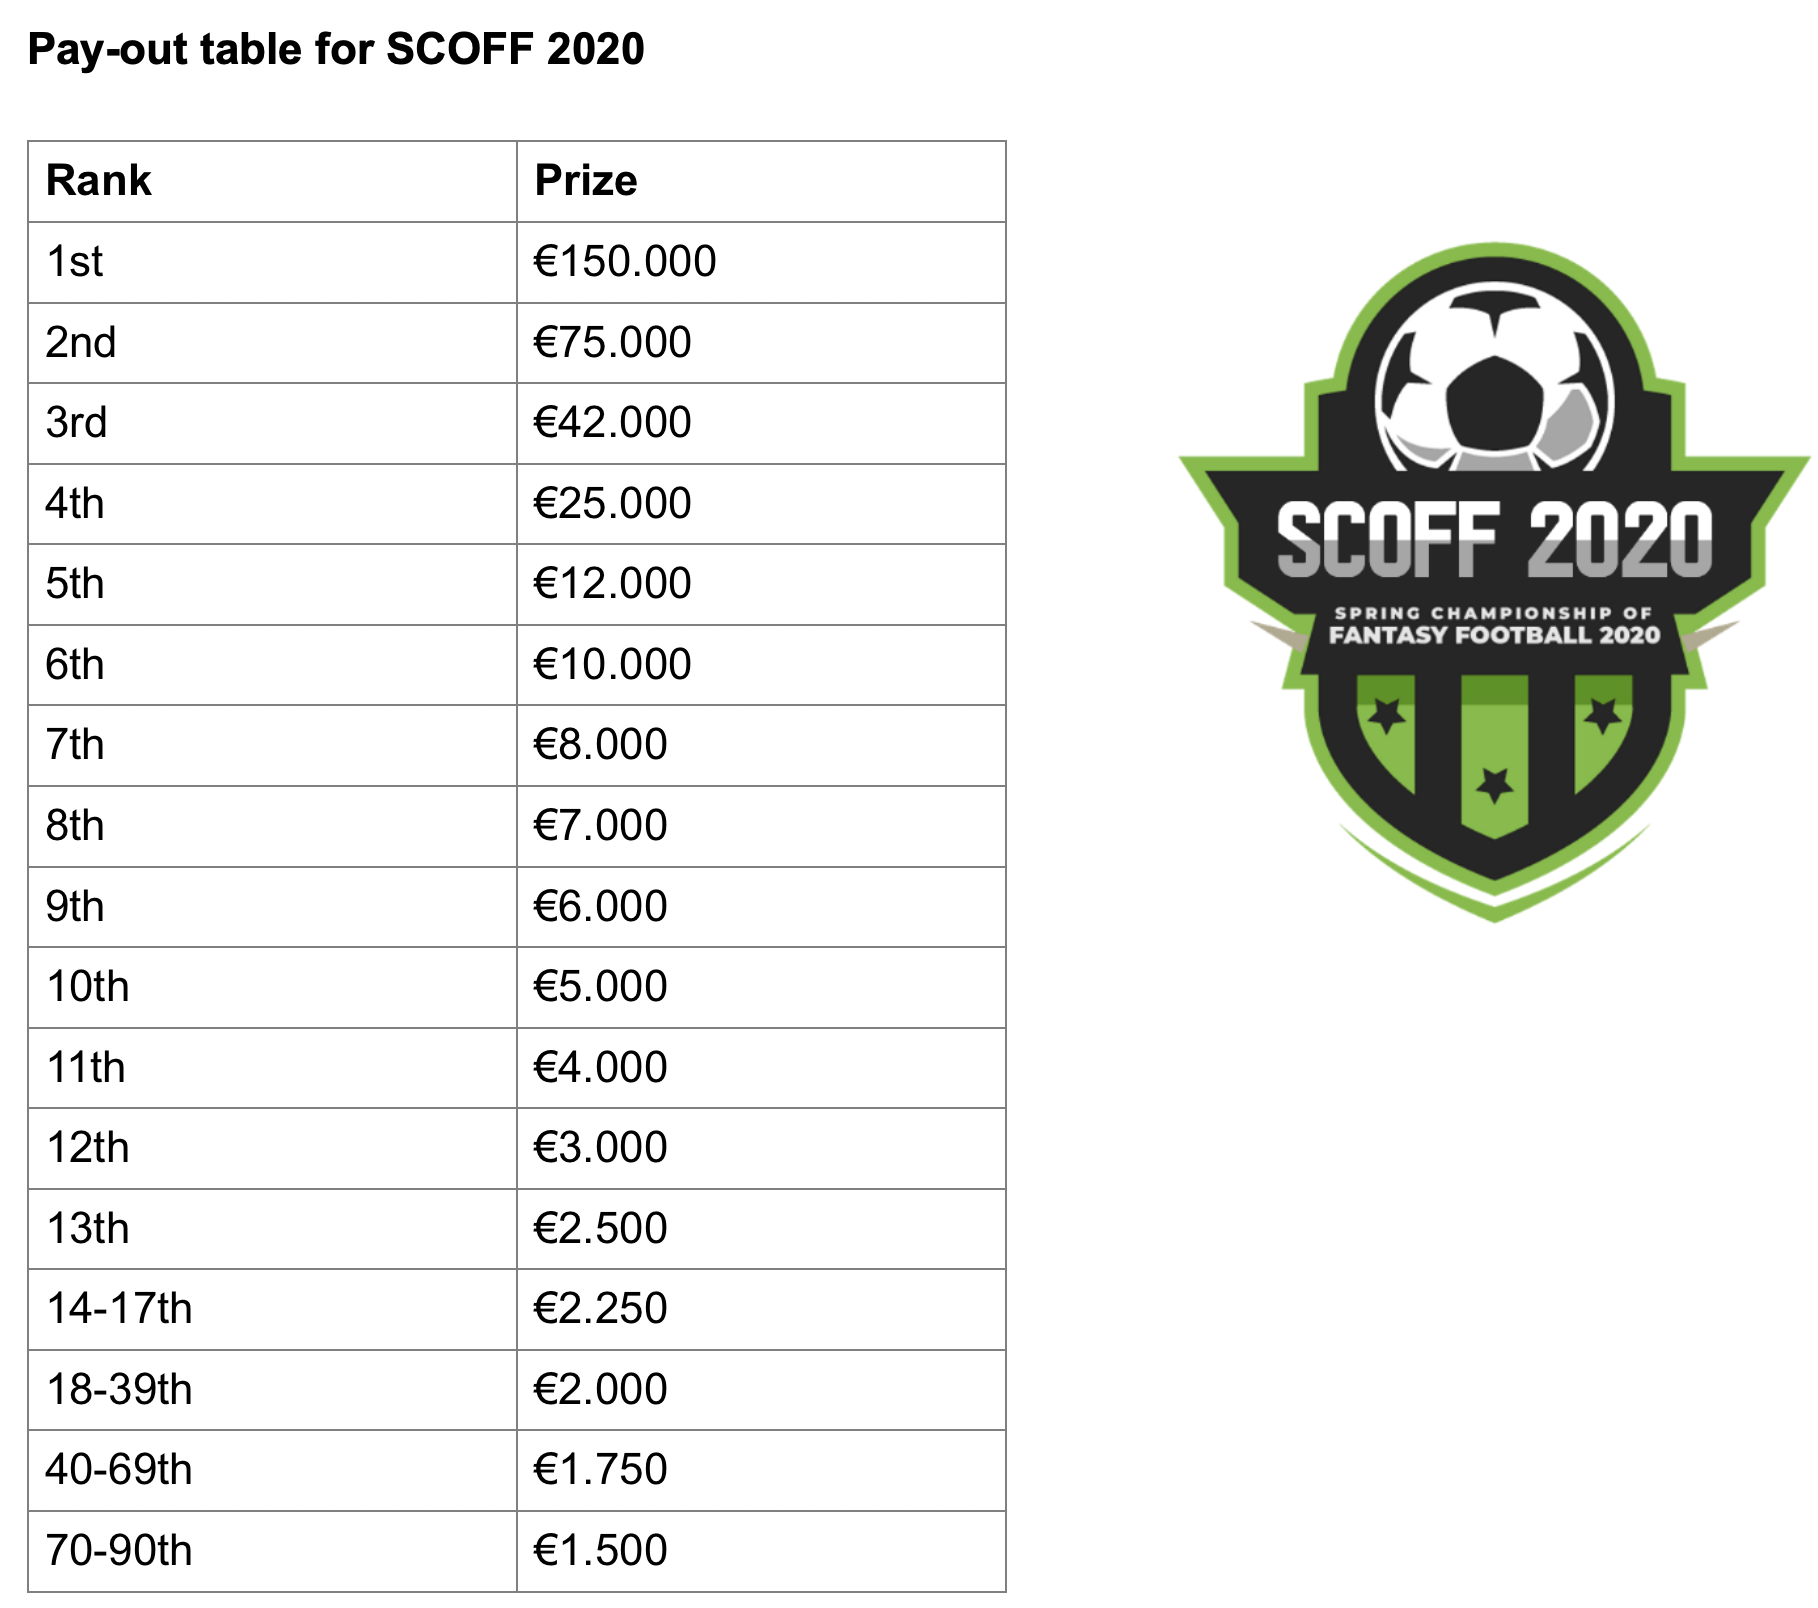 SCOFF 2020 Payout Table